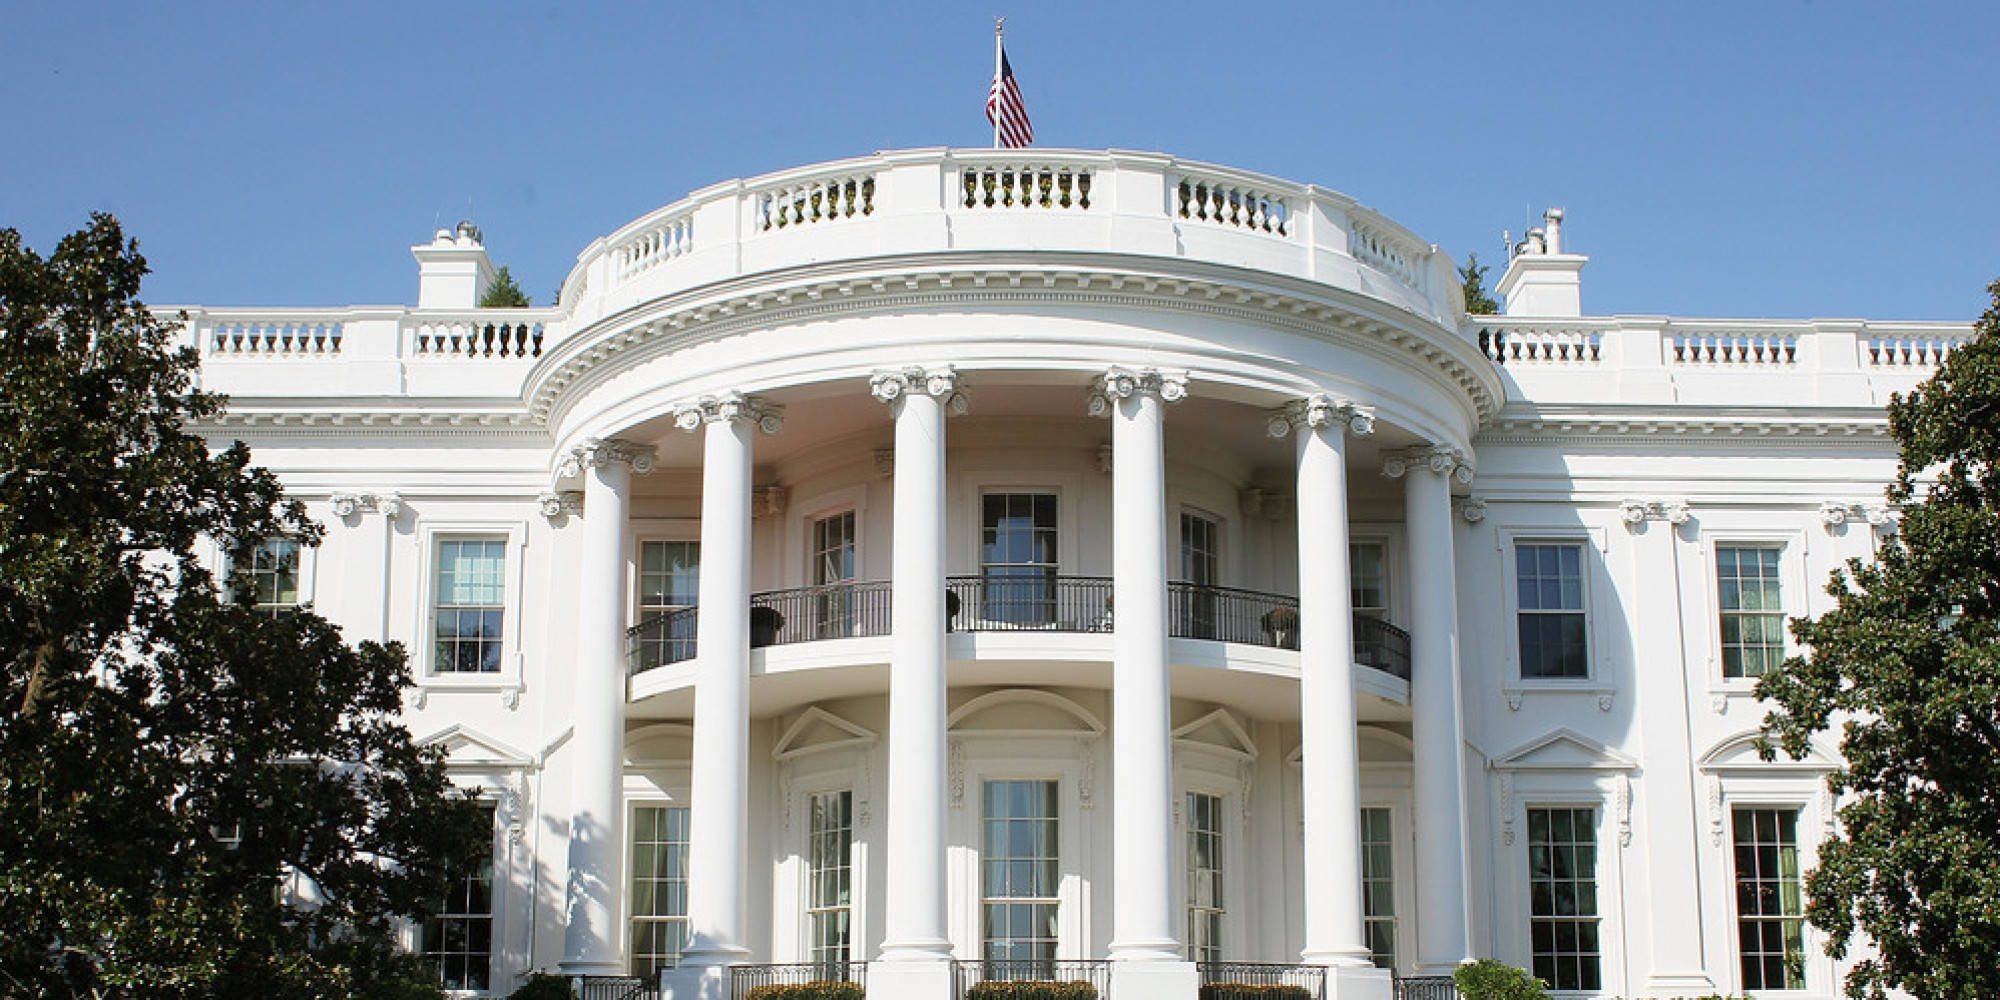 WHITE-HOUSE(FILEminimizer)